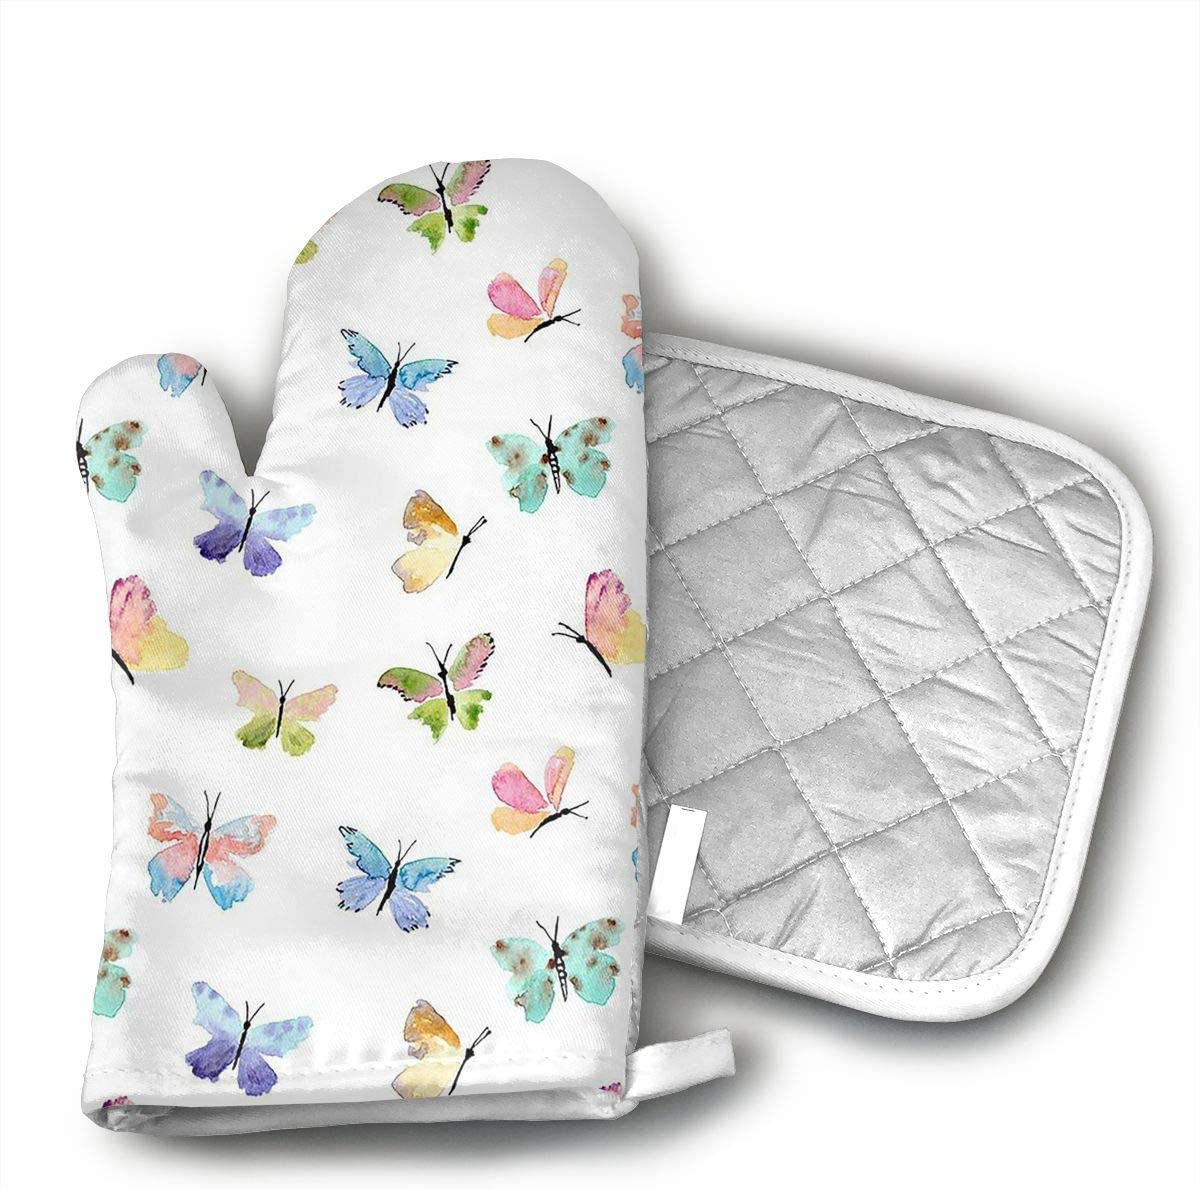 MEILVWEN Colorful Butterfly Oven Mitt and Pot Holder Set,Heat Resistant for Cooking and Baking Kitchen Gift